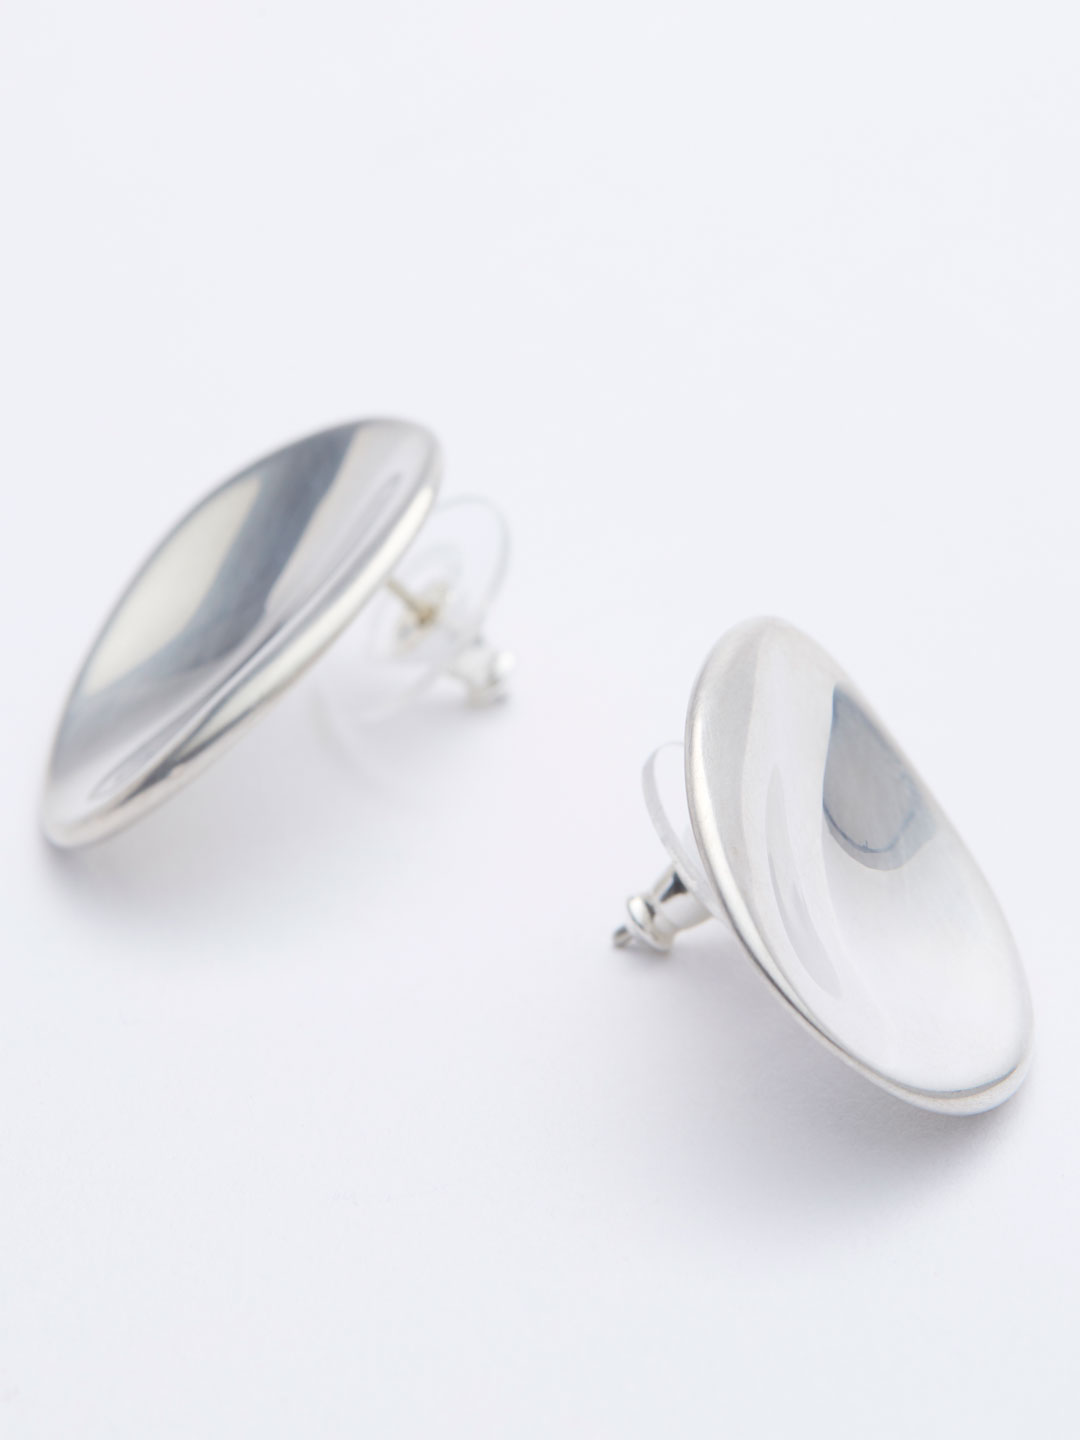 Ridge Pierced Earrings - Silver